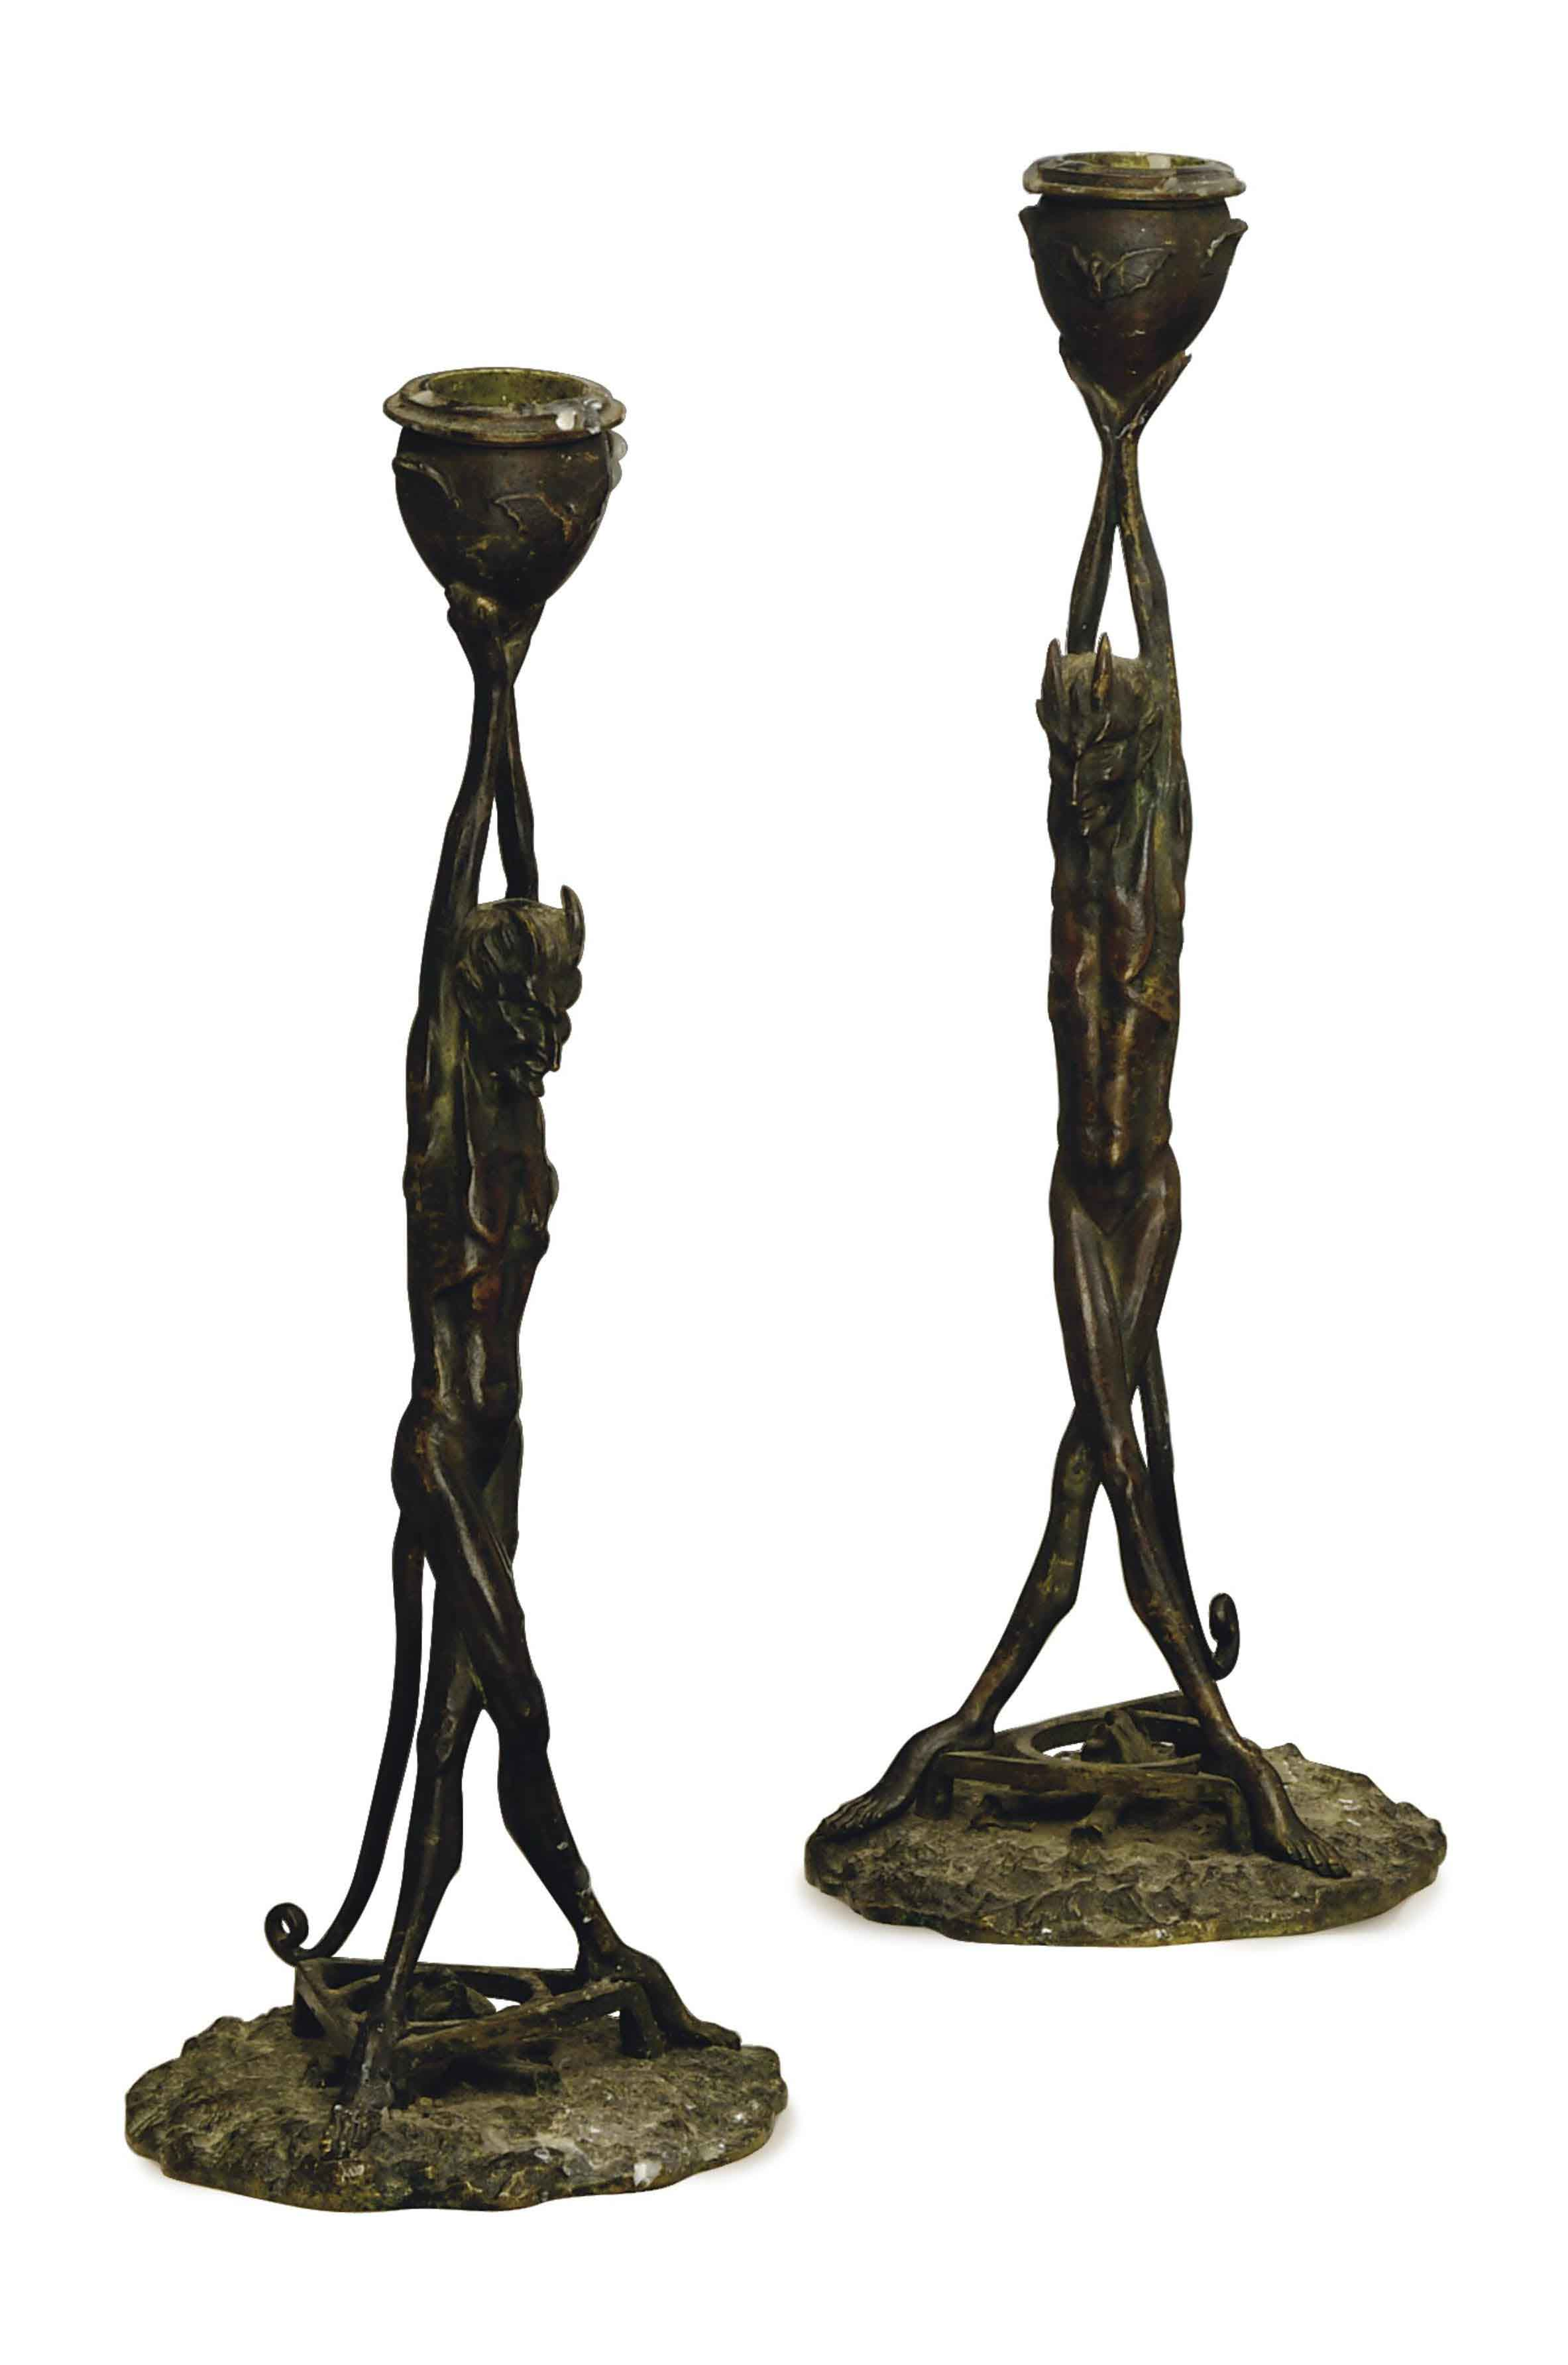 A PAIR OF CONTINENTAL PATINATED-BRONZE DEVIL FIGURAL CANDLESTICKS,